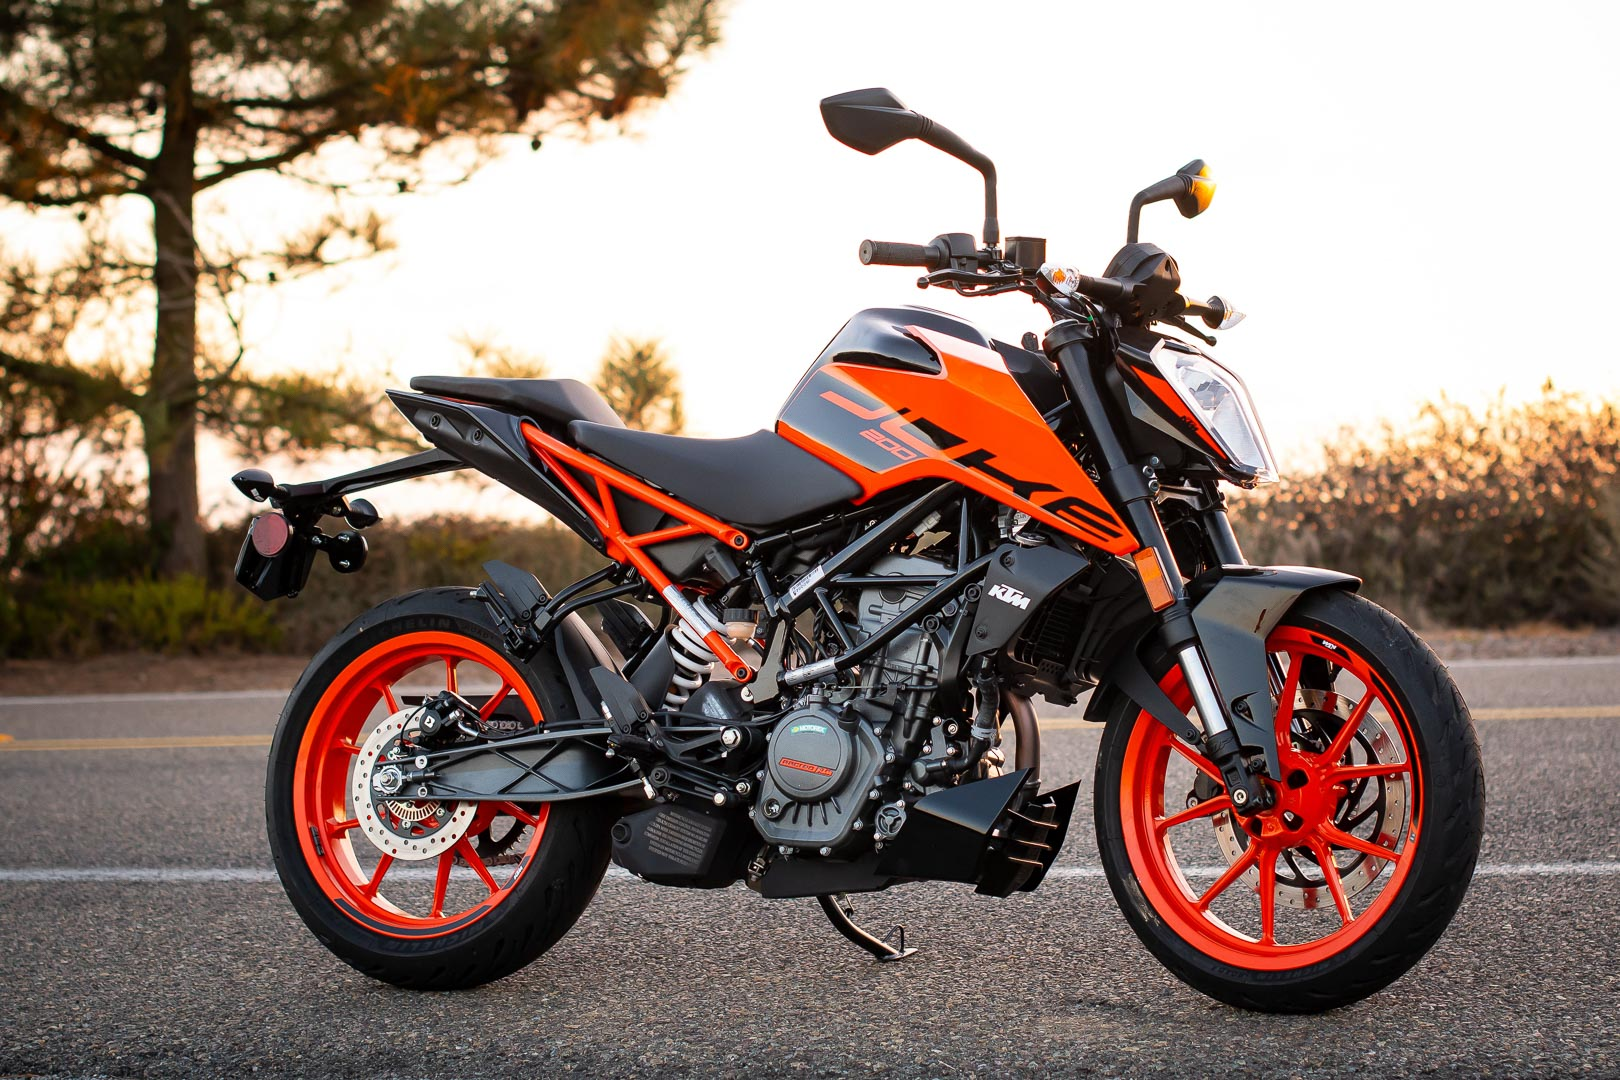 2020 KTM 200 Duke Review: Sport Motorcycle